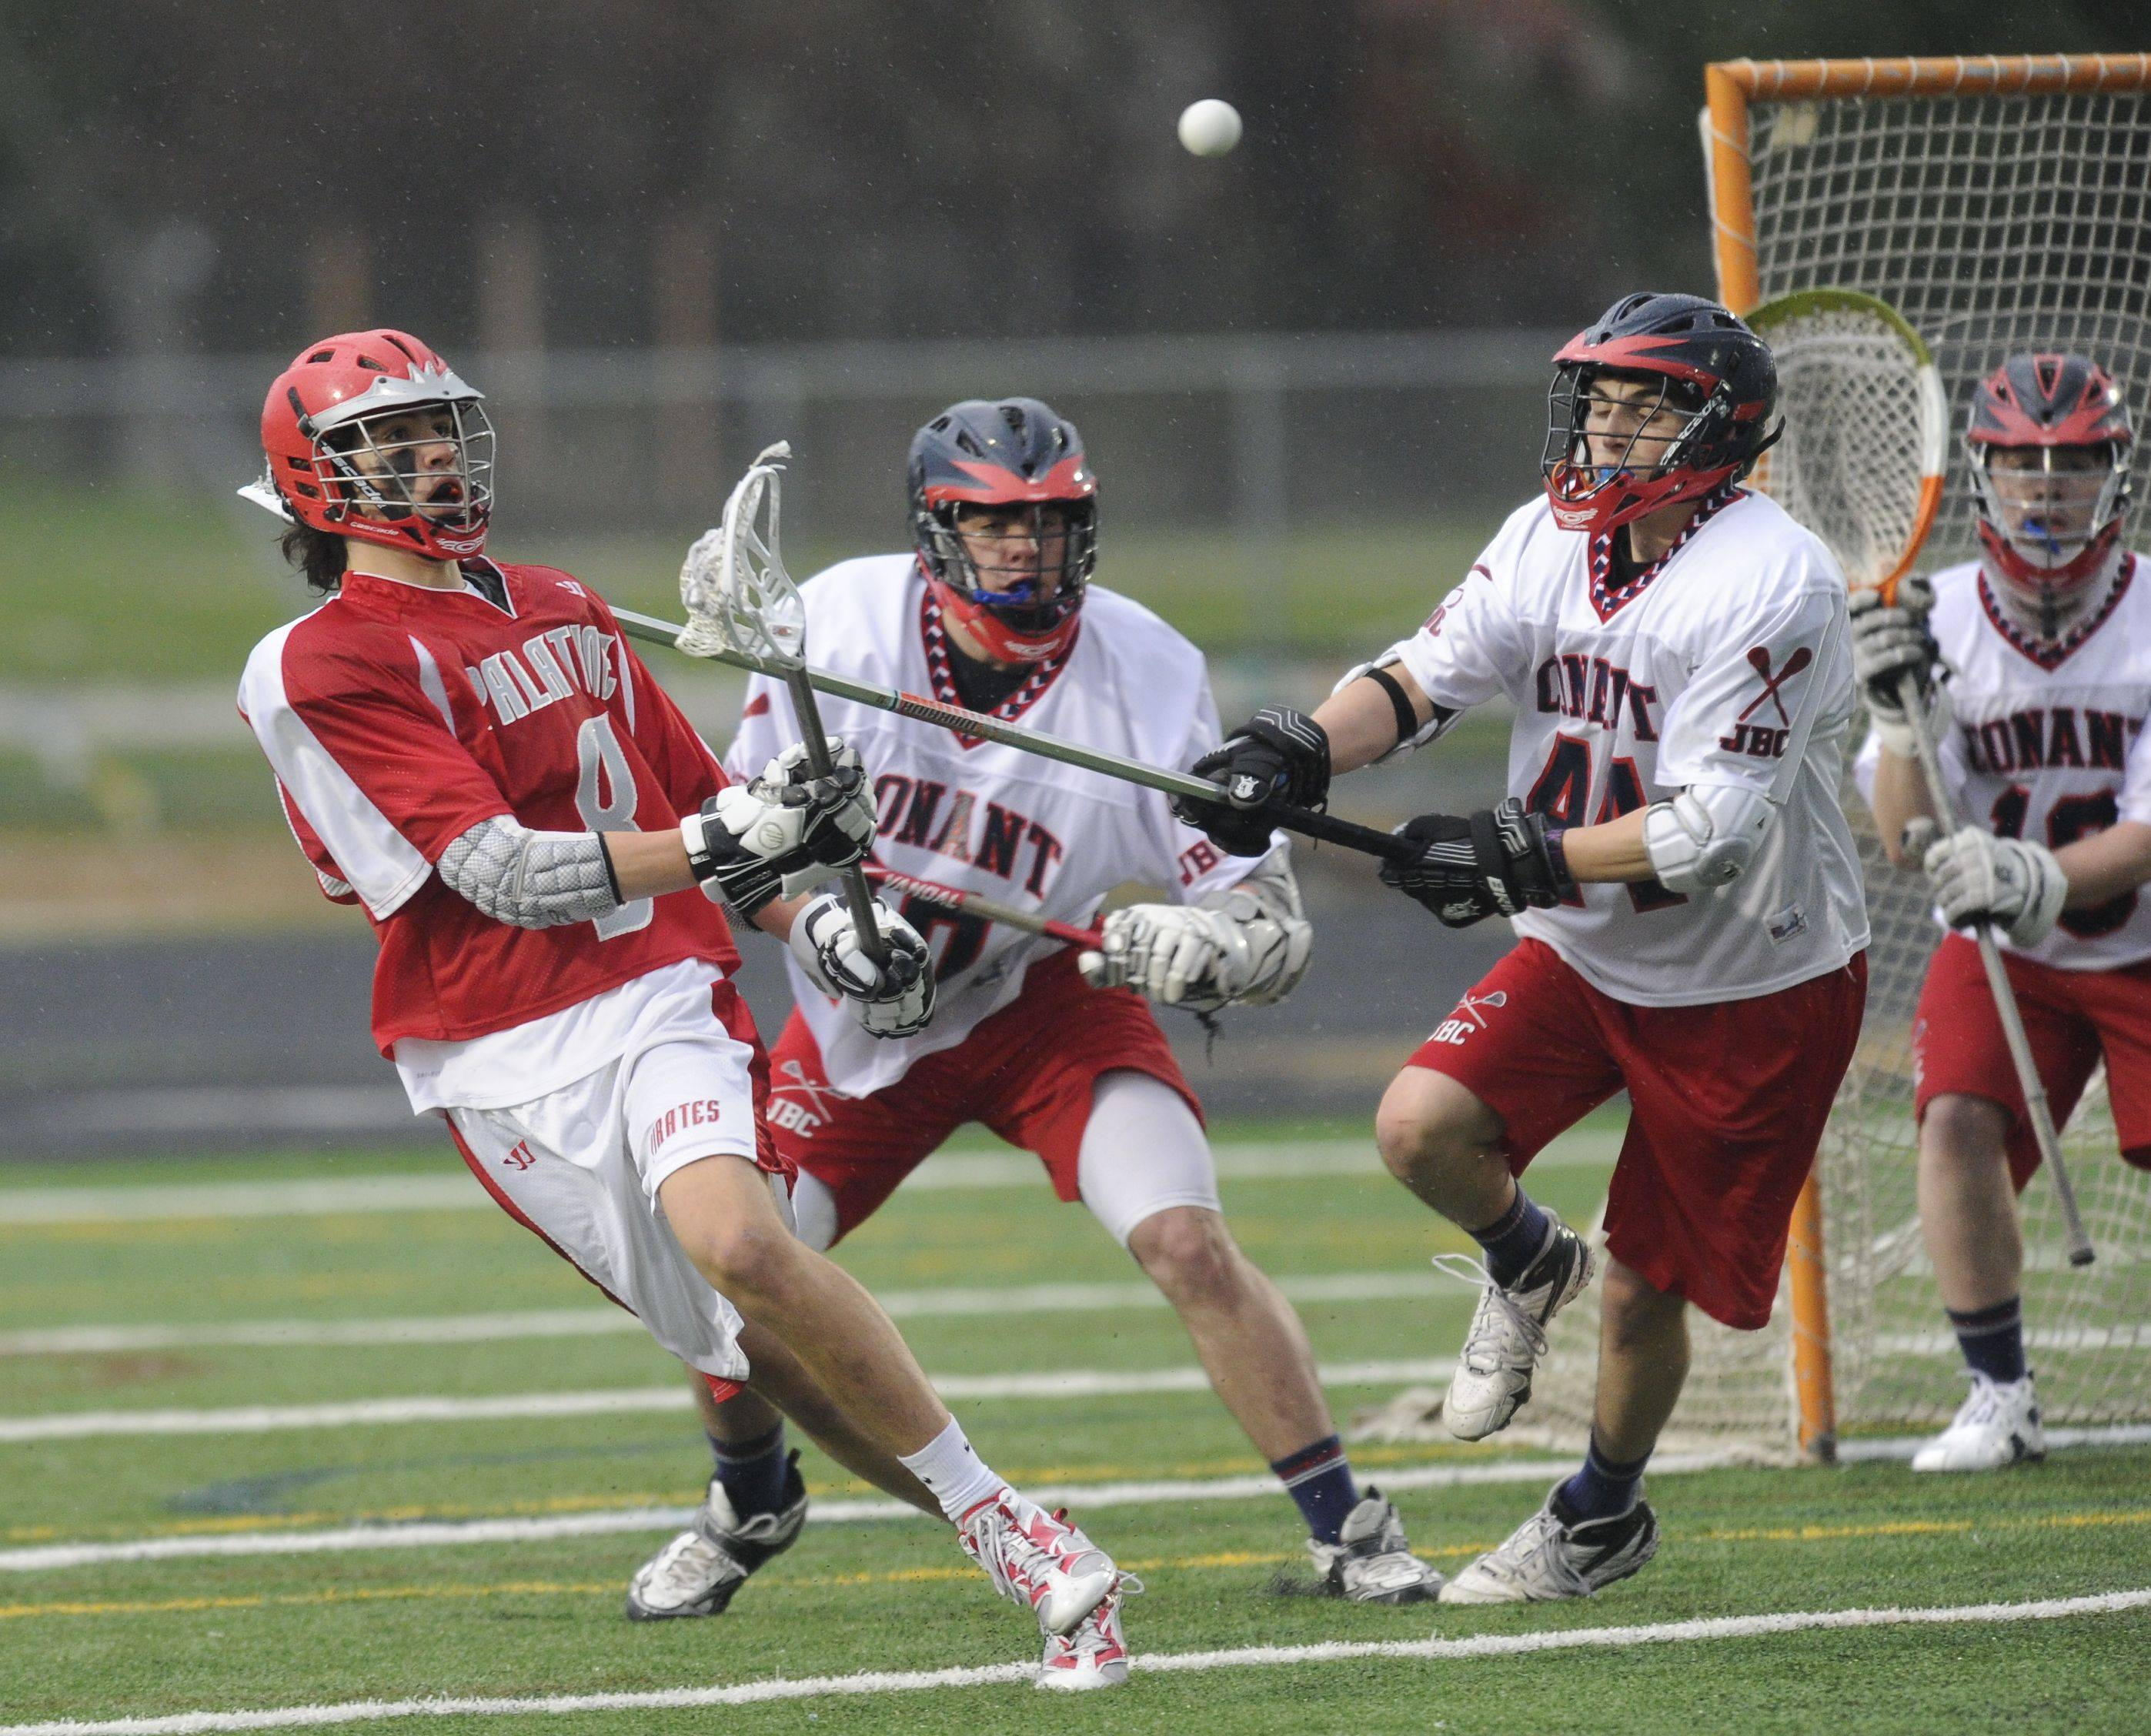 Images from the boys varsity lacrosse game, Conant vs Palatine at Conant High School on May 5, 2011.